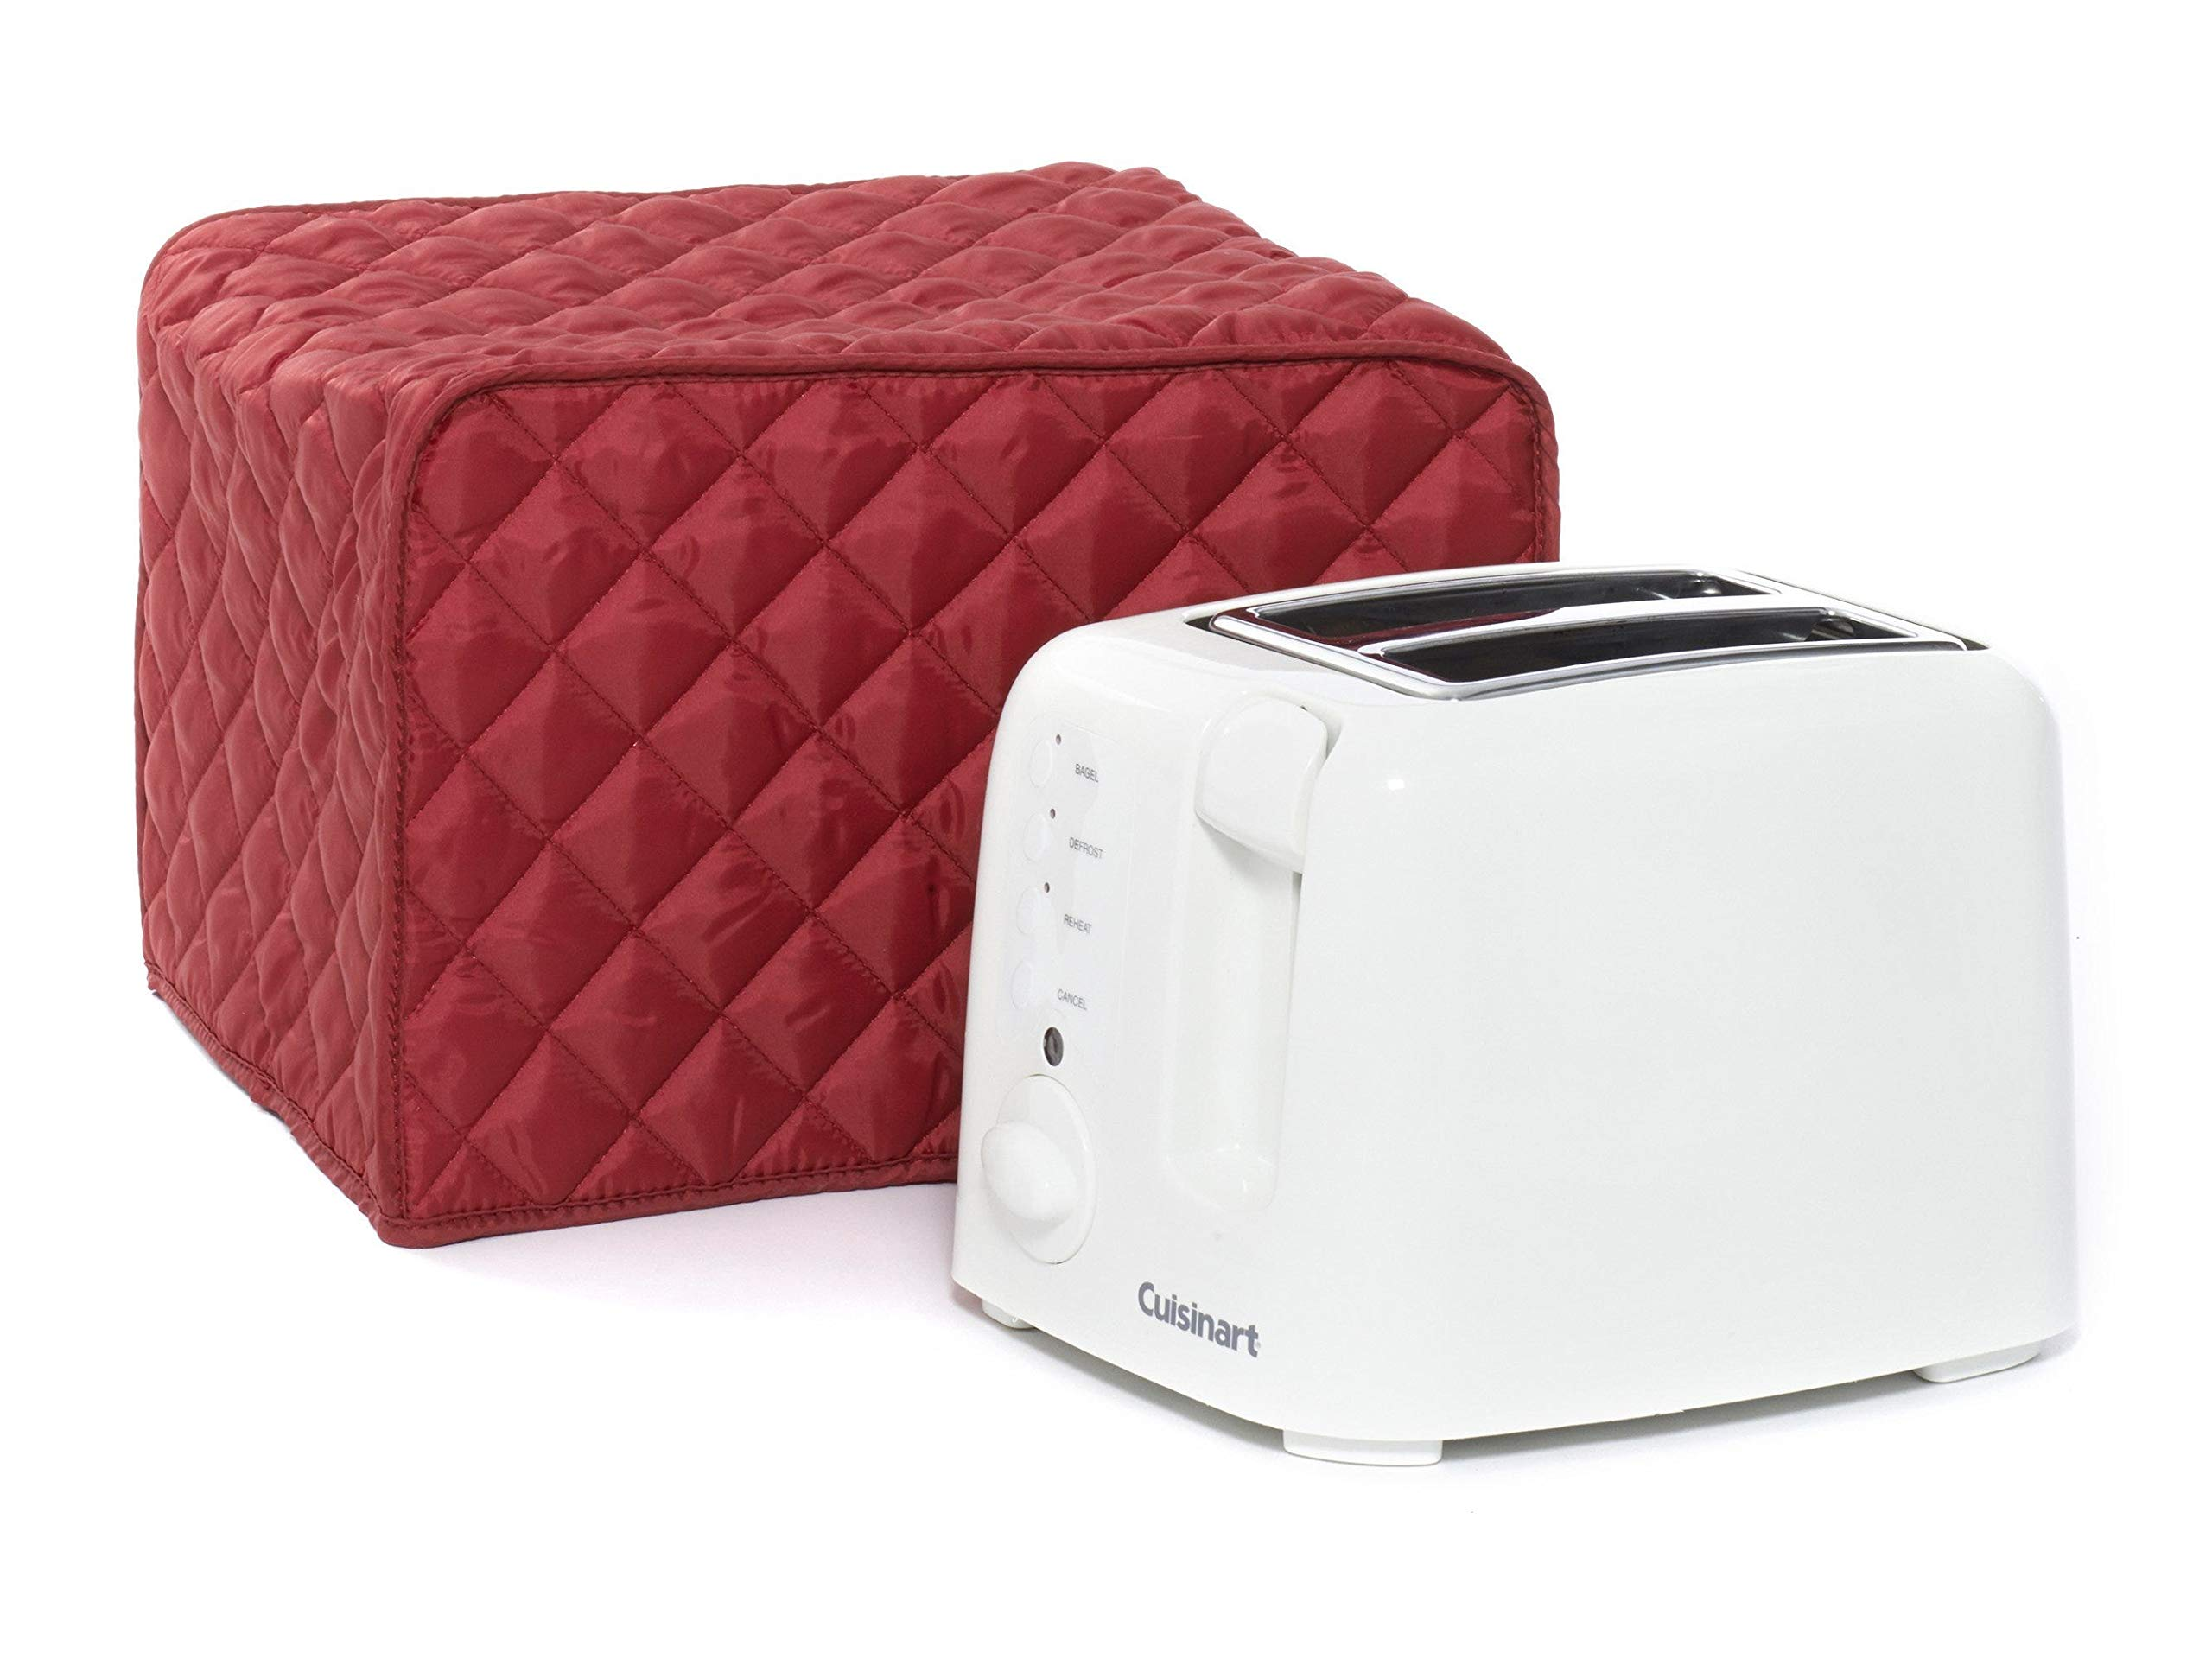 Covermates Keepsakes – Toaster Cover – Dust Protection - Stain Resistant - Washable – Appliance Cover - Red